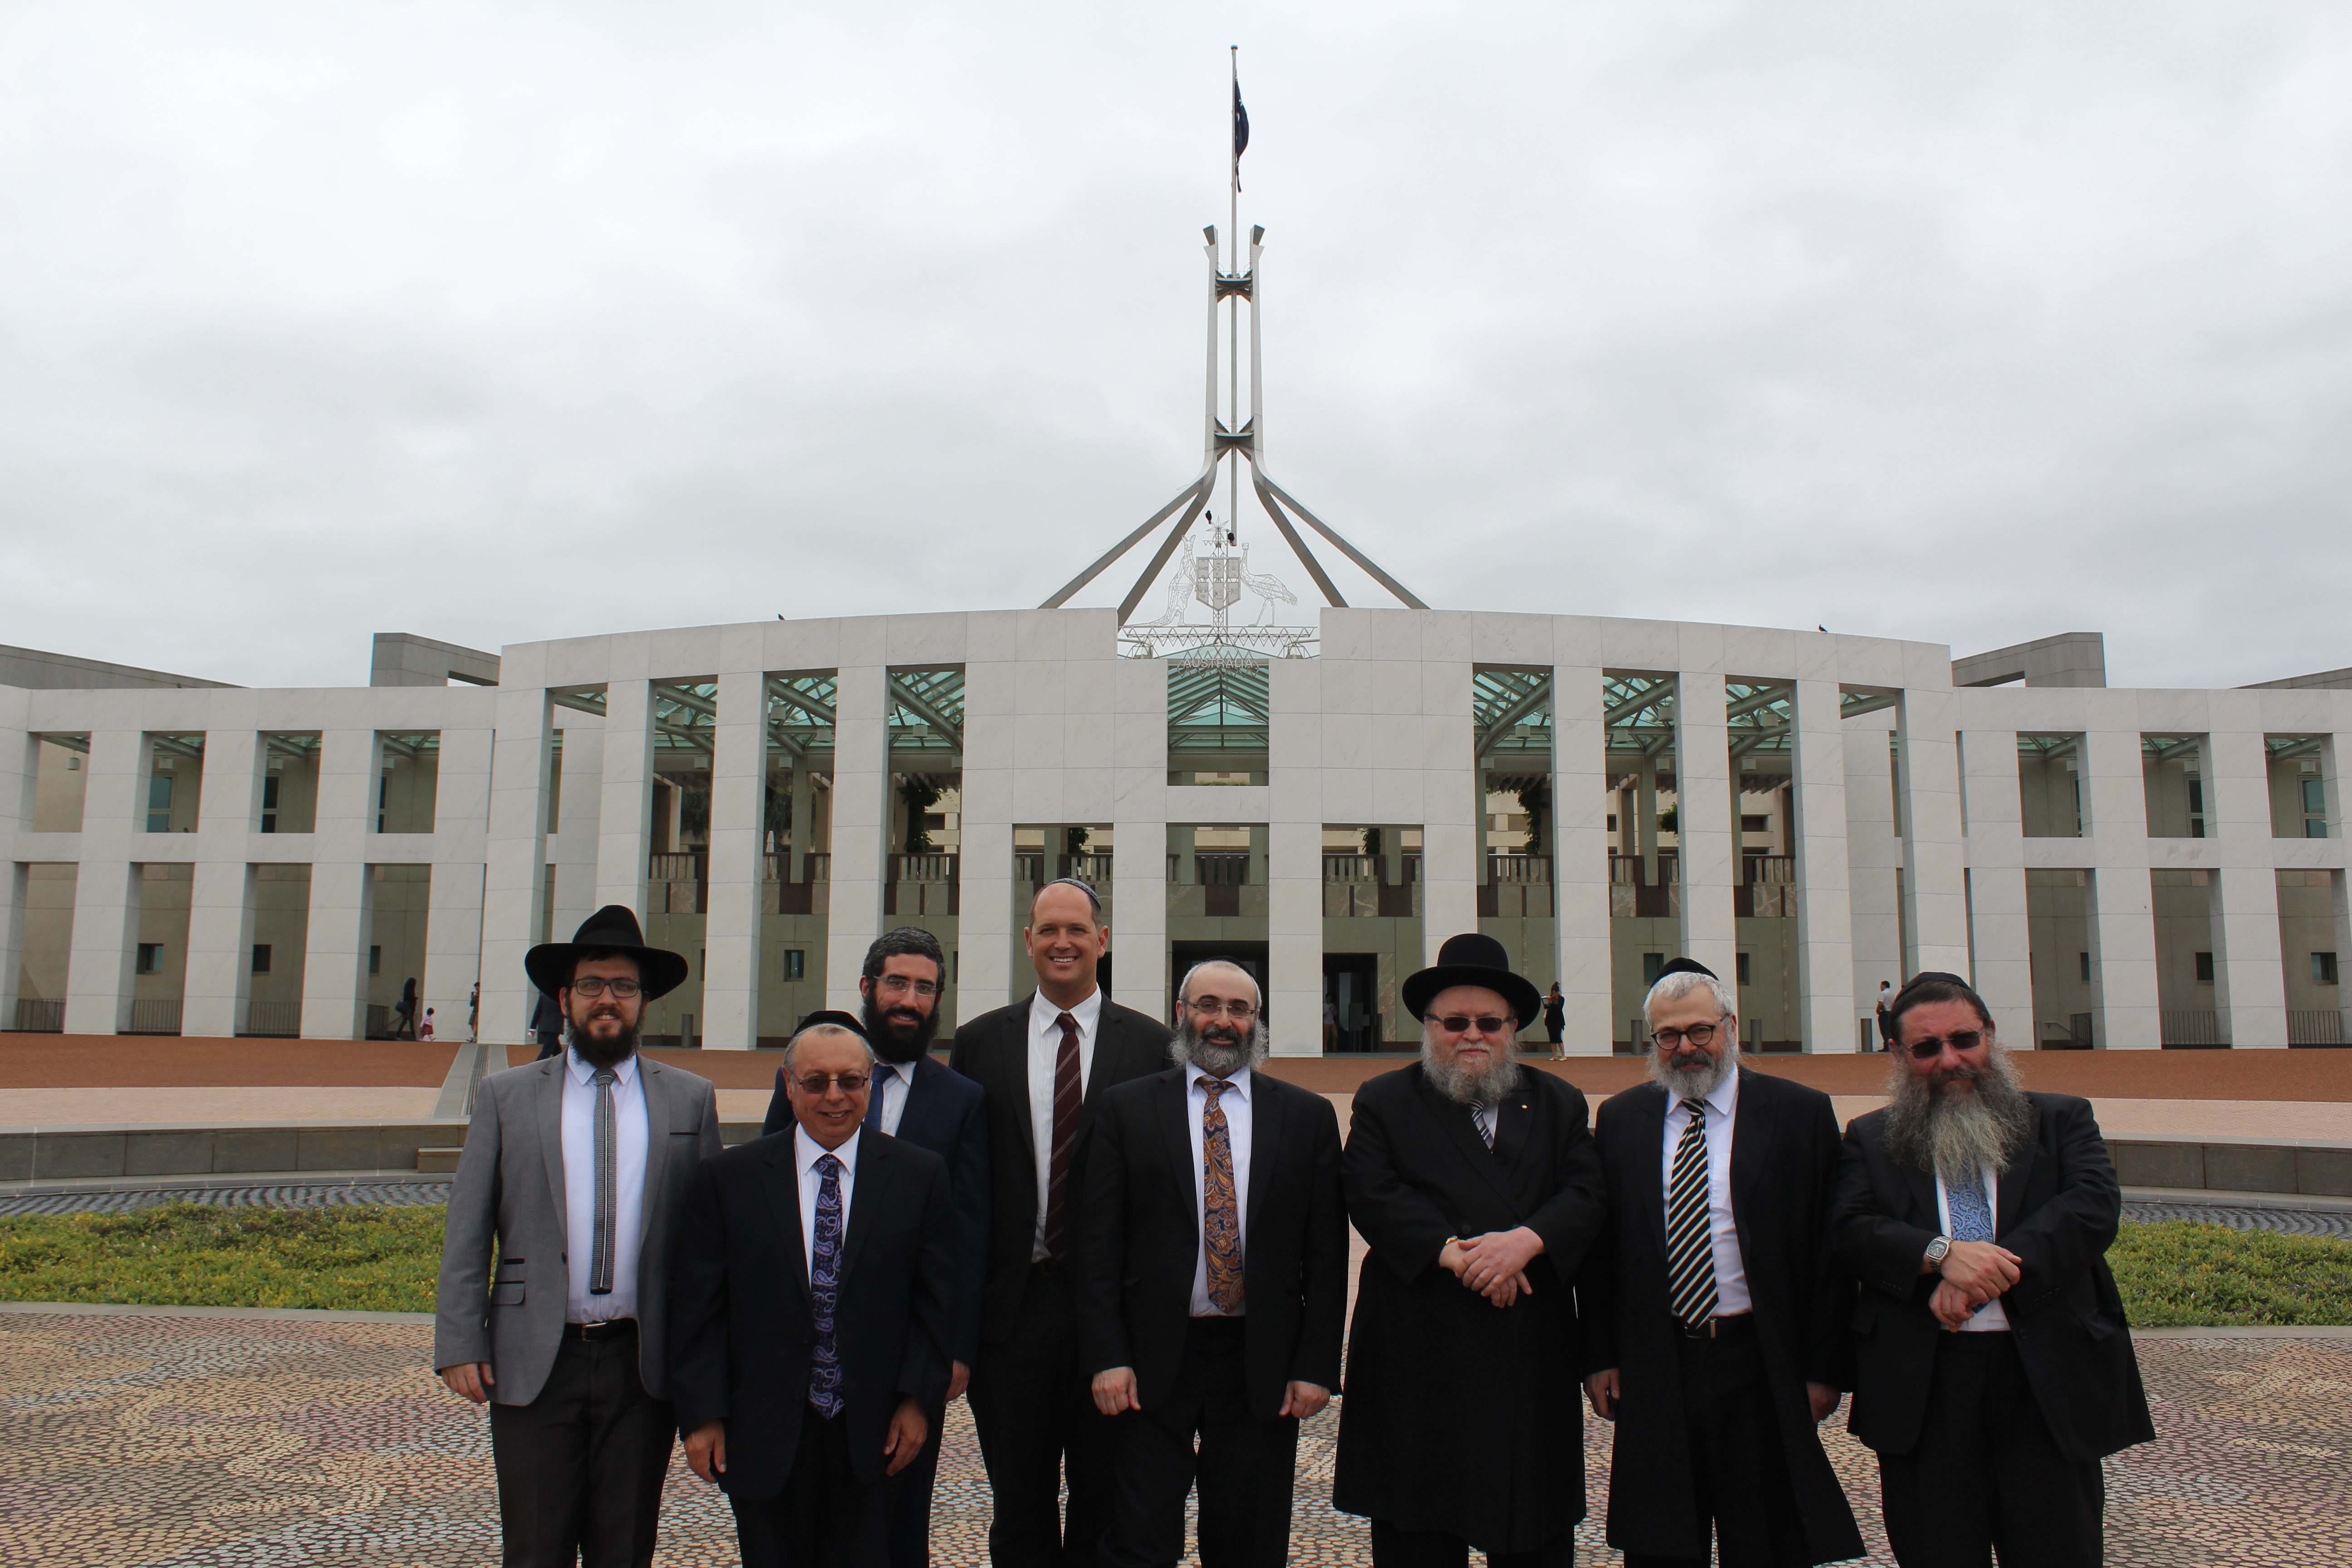 Rabbi's Group Photo Outside Parliament House copy 2.jpg